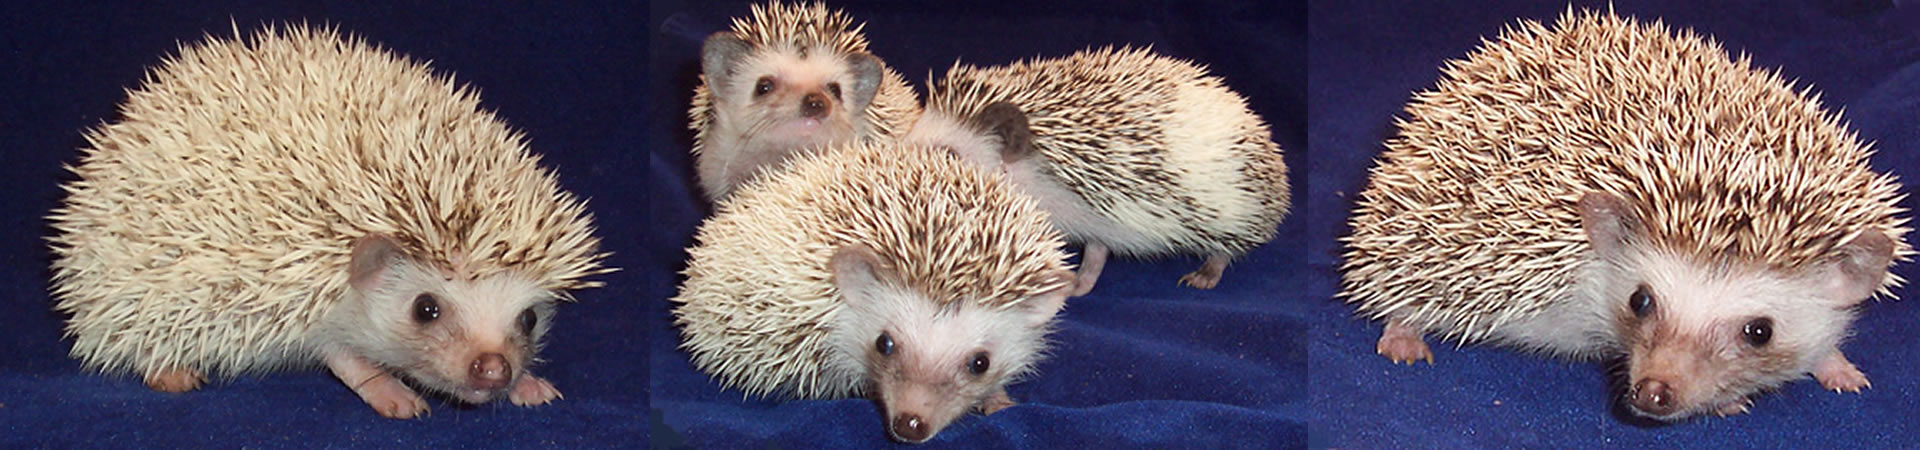 Experienced Hedgehog Breeders